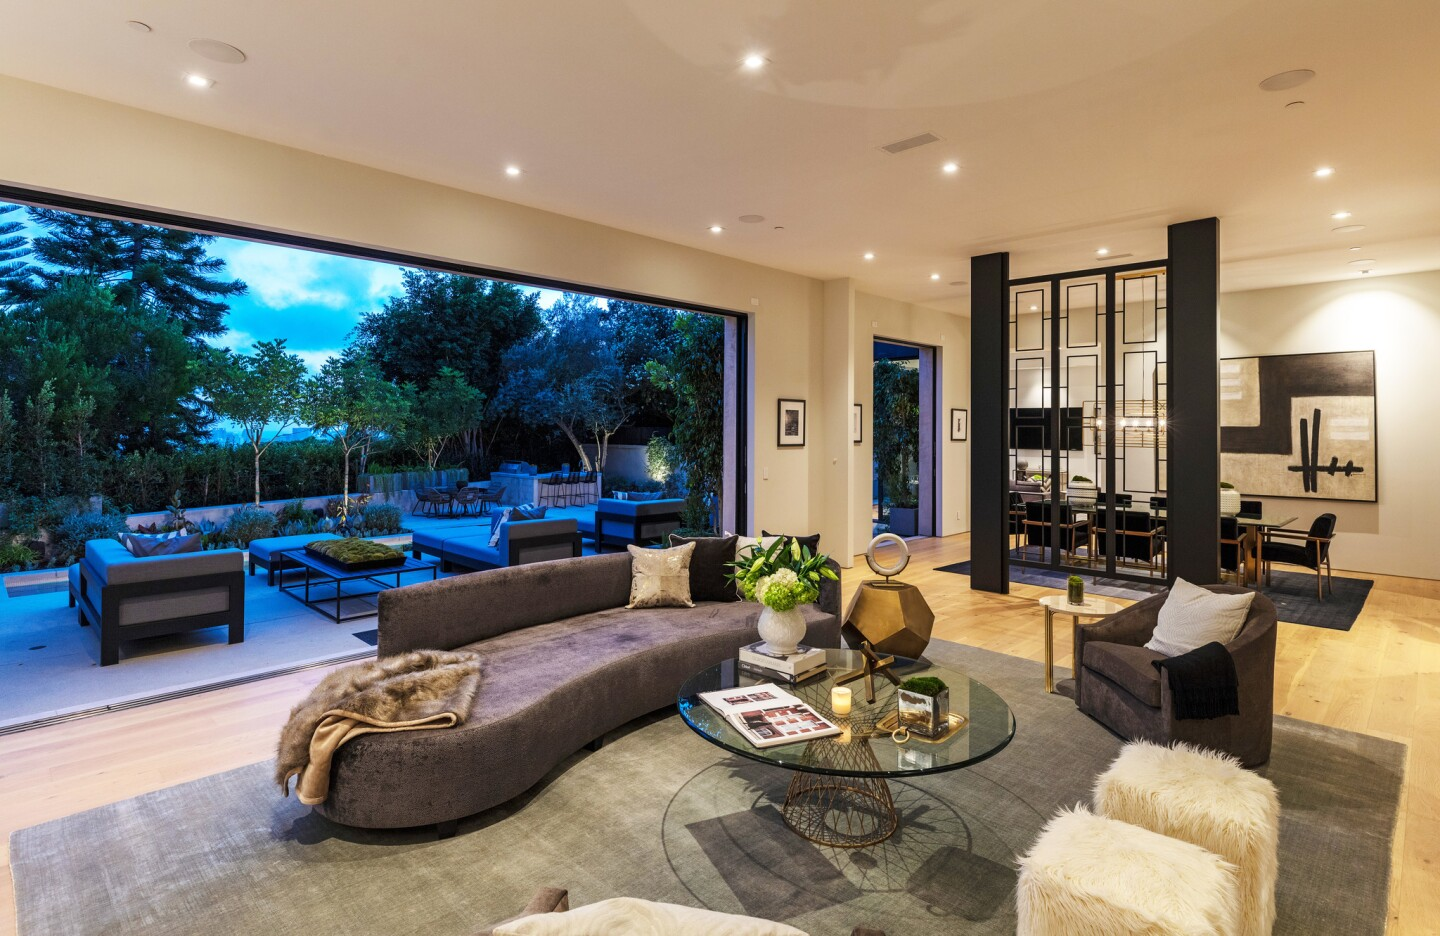 Home of the Week | Delresto Drive